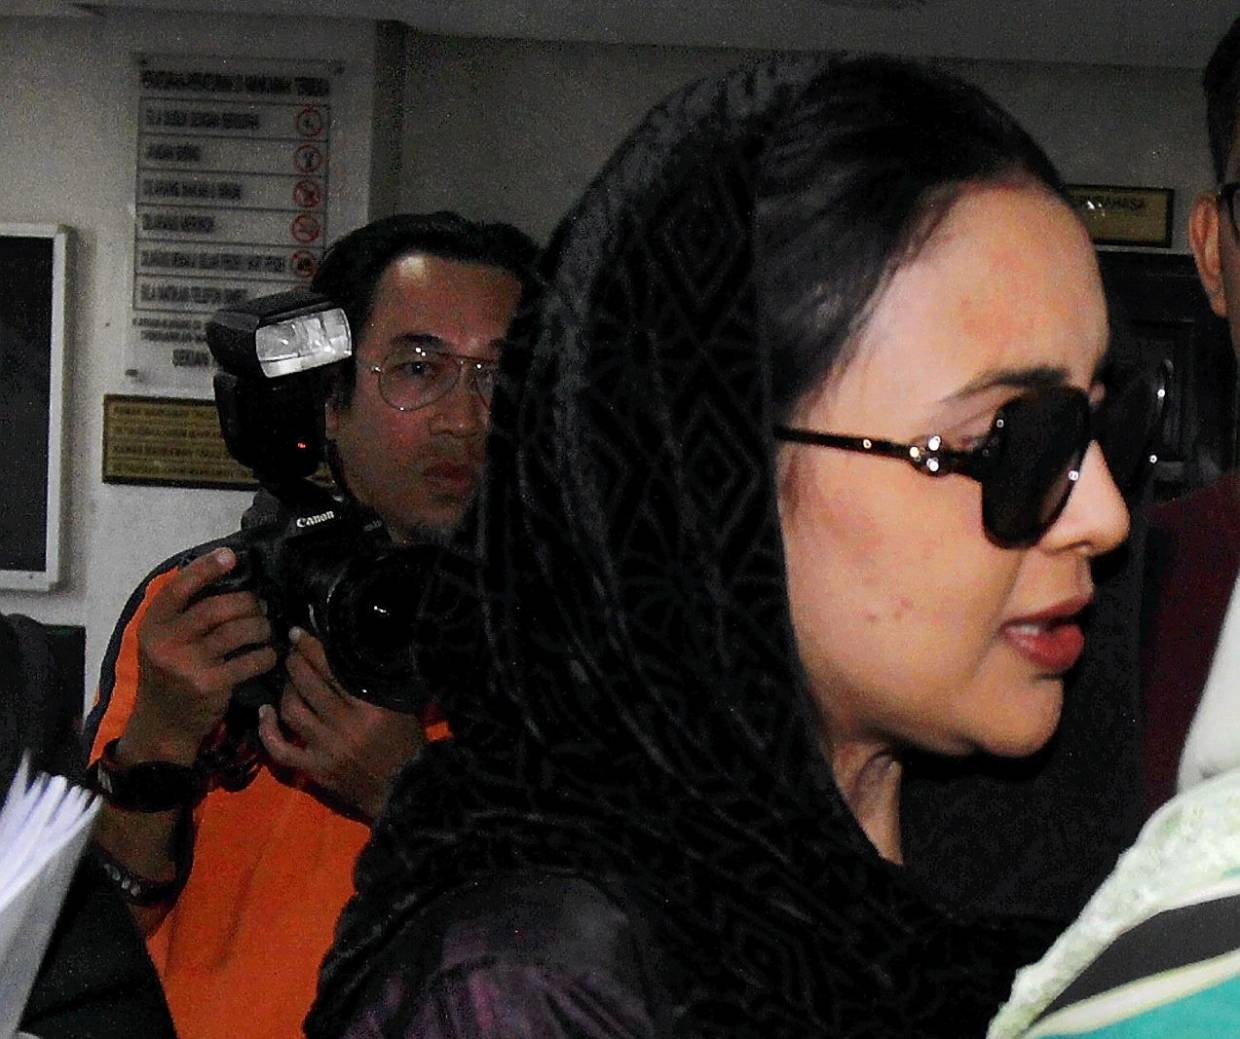 Cradle CEO murder trial begins today (Sept 6)   The Star Online